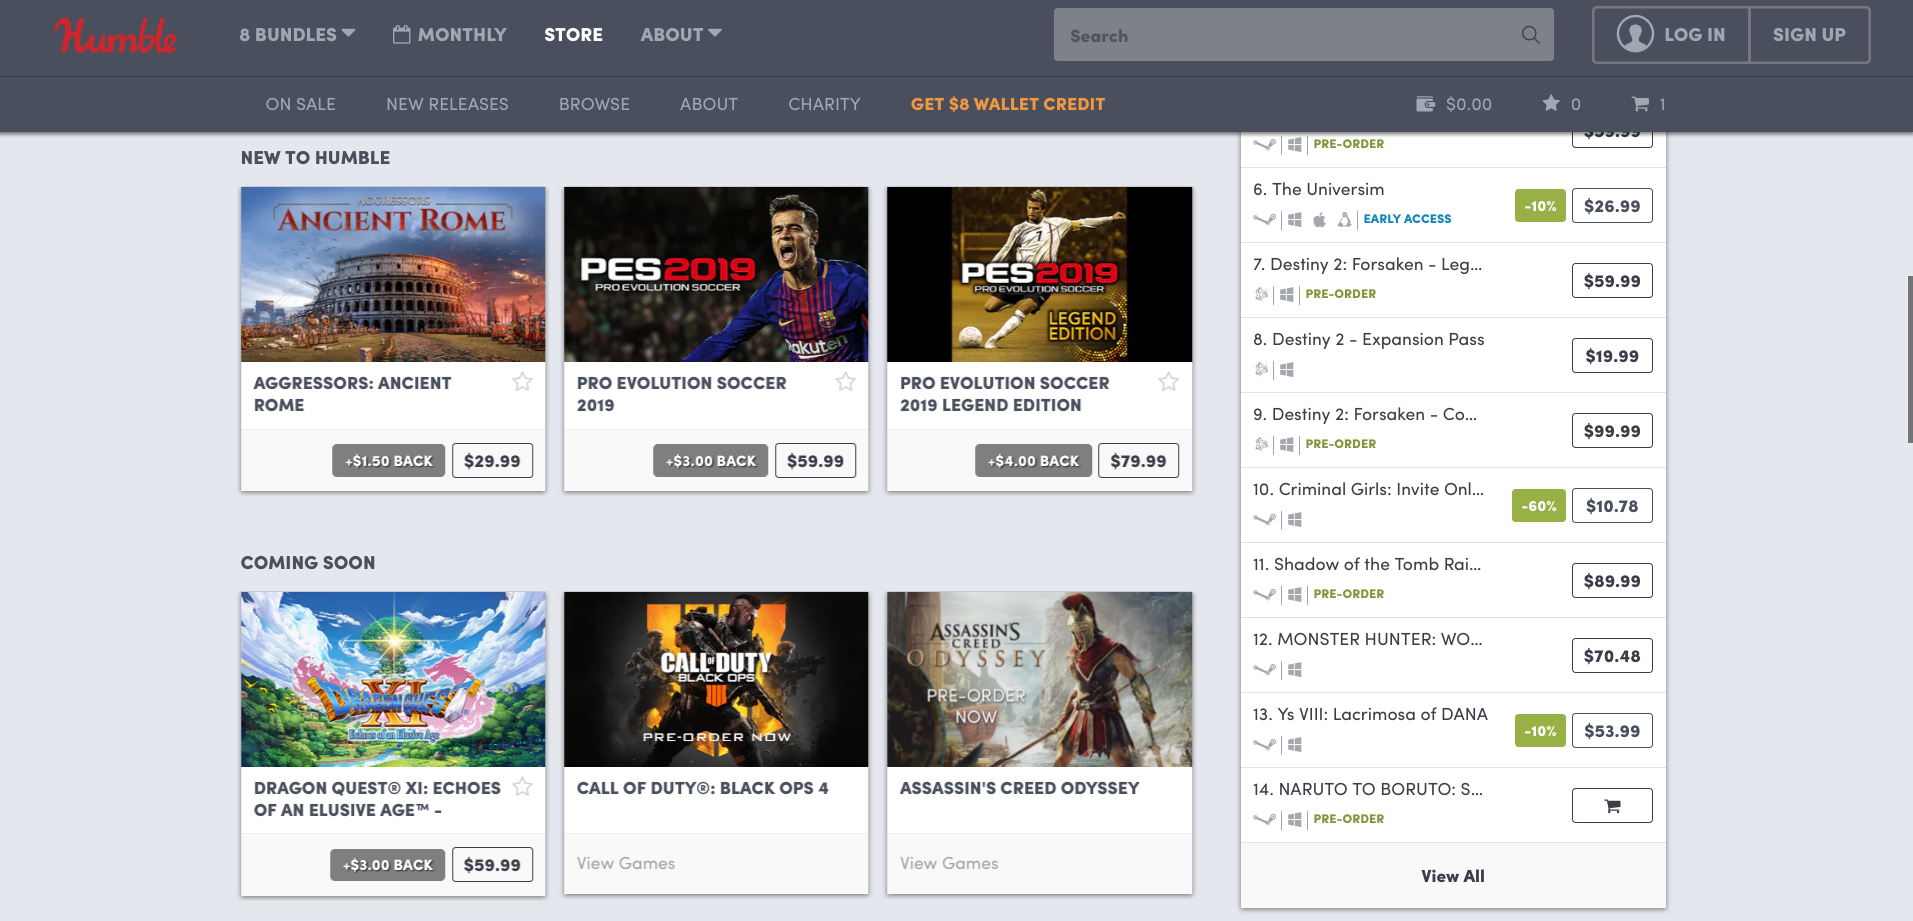 Step One: Visit Humble Bundle's Online Store Through Our Link